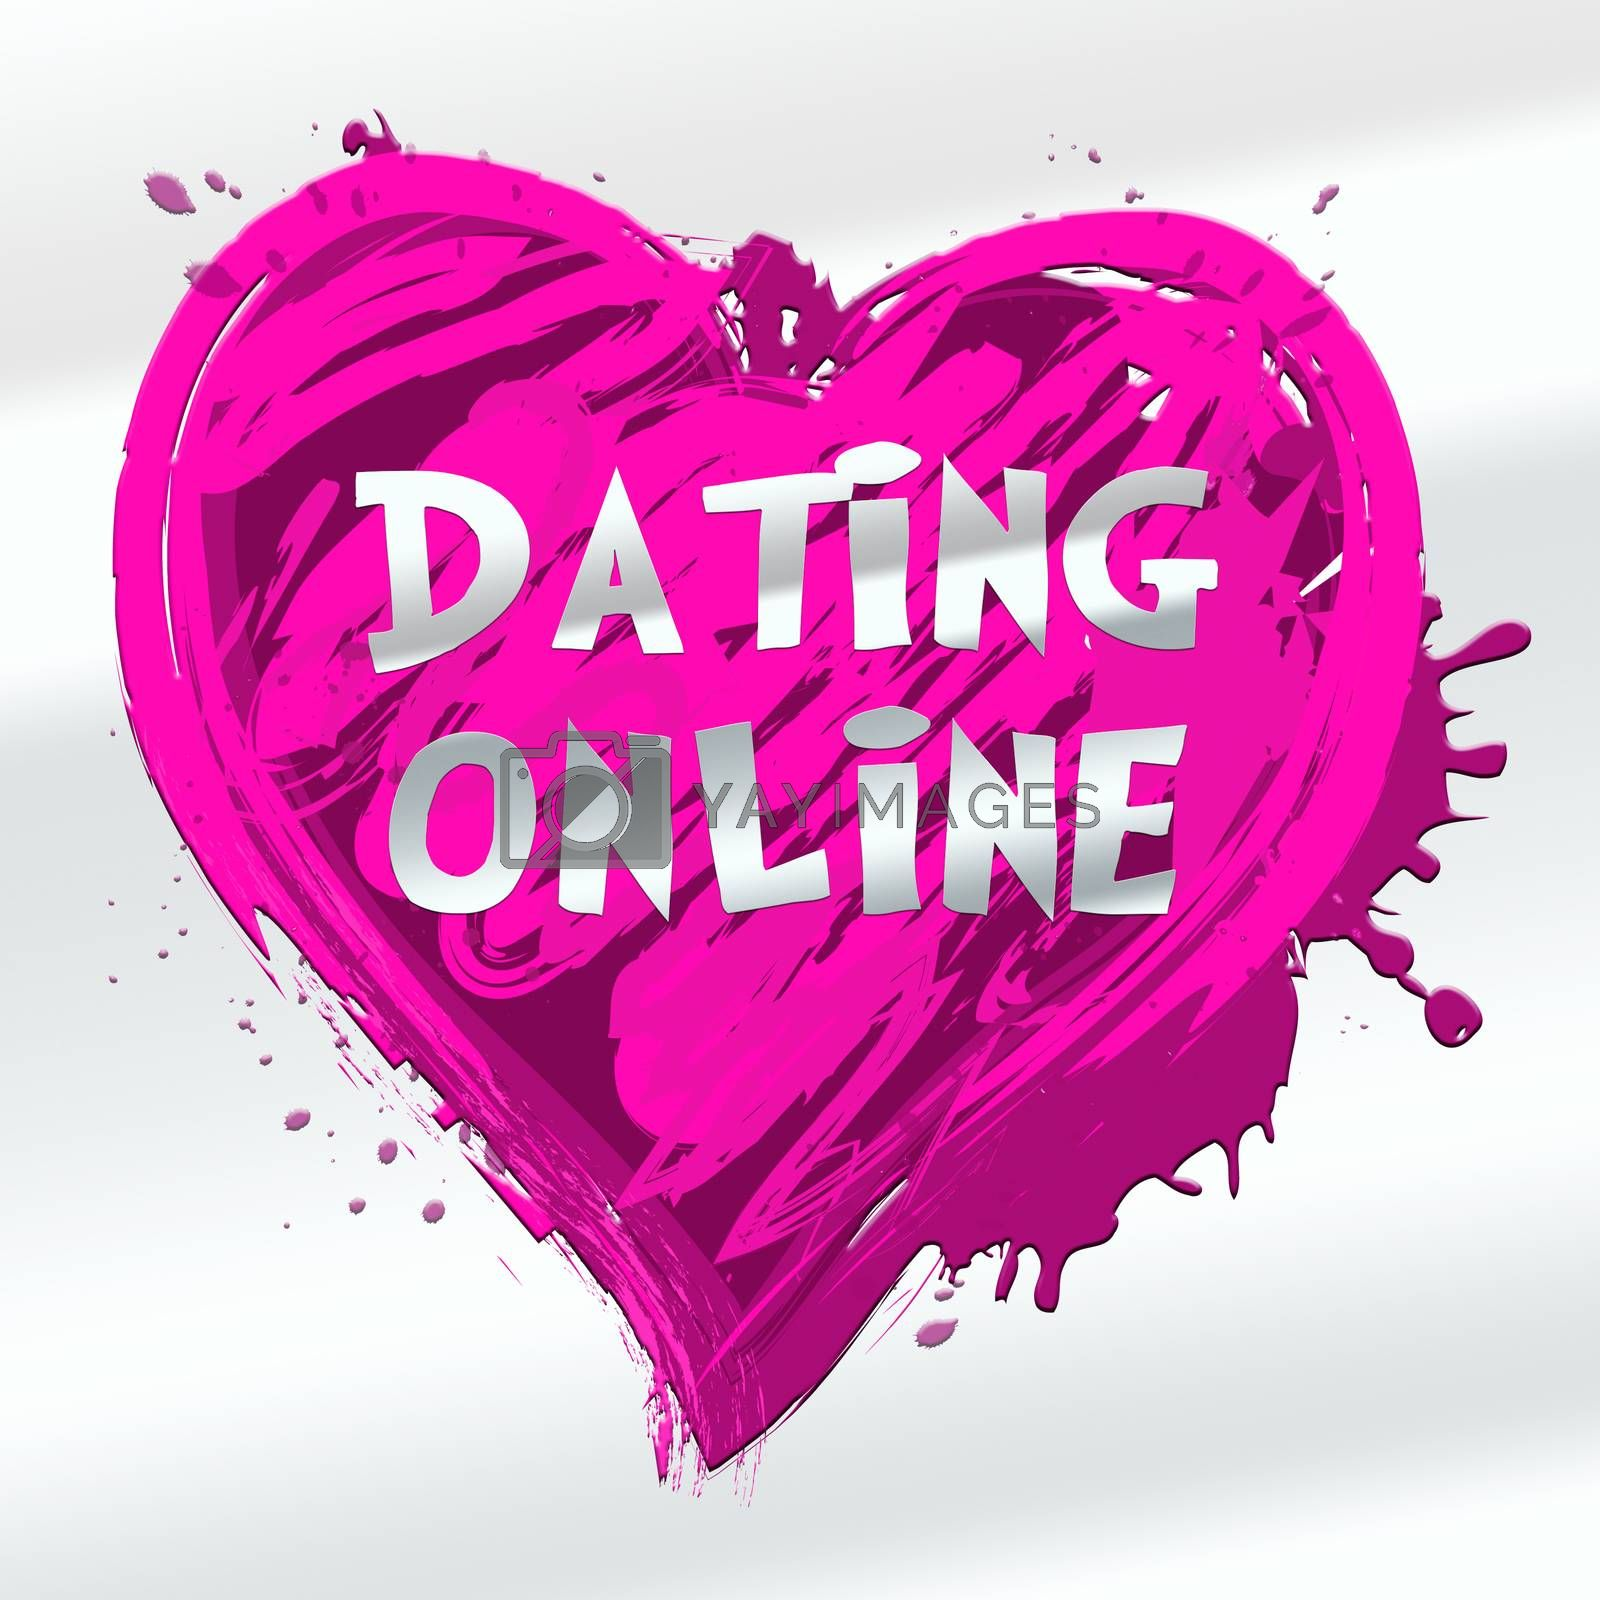 Dating Online Heart Design Indicating Sweethearts Romance 3d Illustration